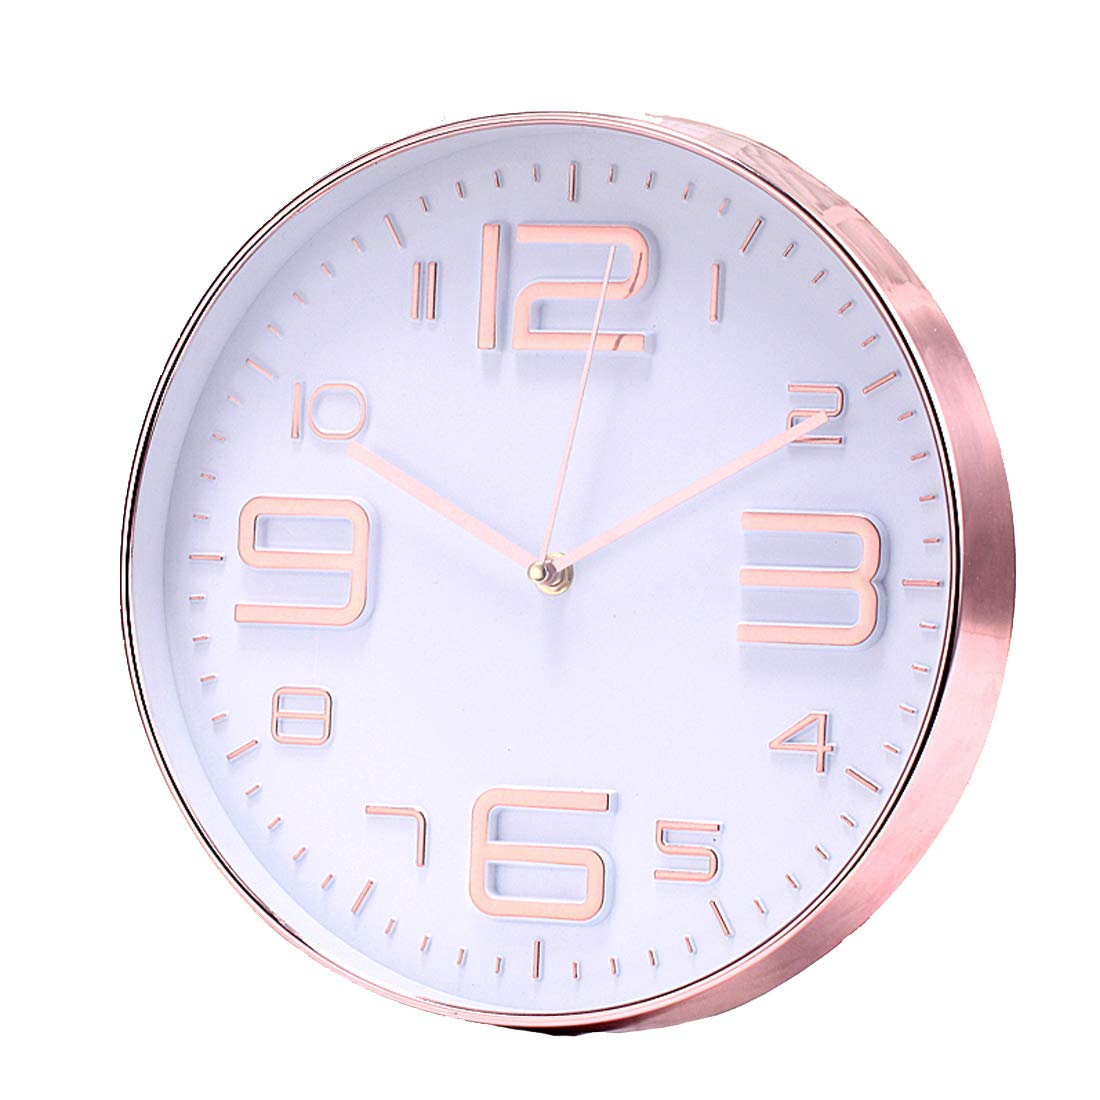 LONBUYS Rose Gold Silent Wall Clock,12 Inch No Ticking Quartz Clock 3D Numbers Battery Operated Round Easy to Read Modern Wall Clock Decor for School, Living Room,Bedroom,Office